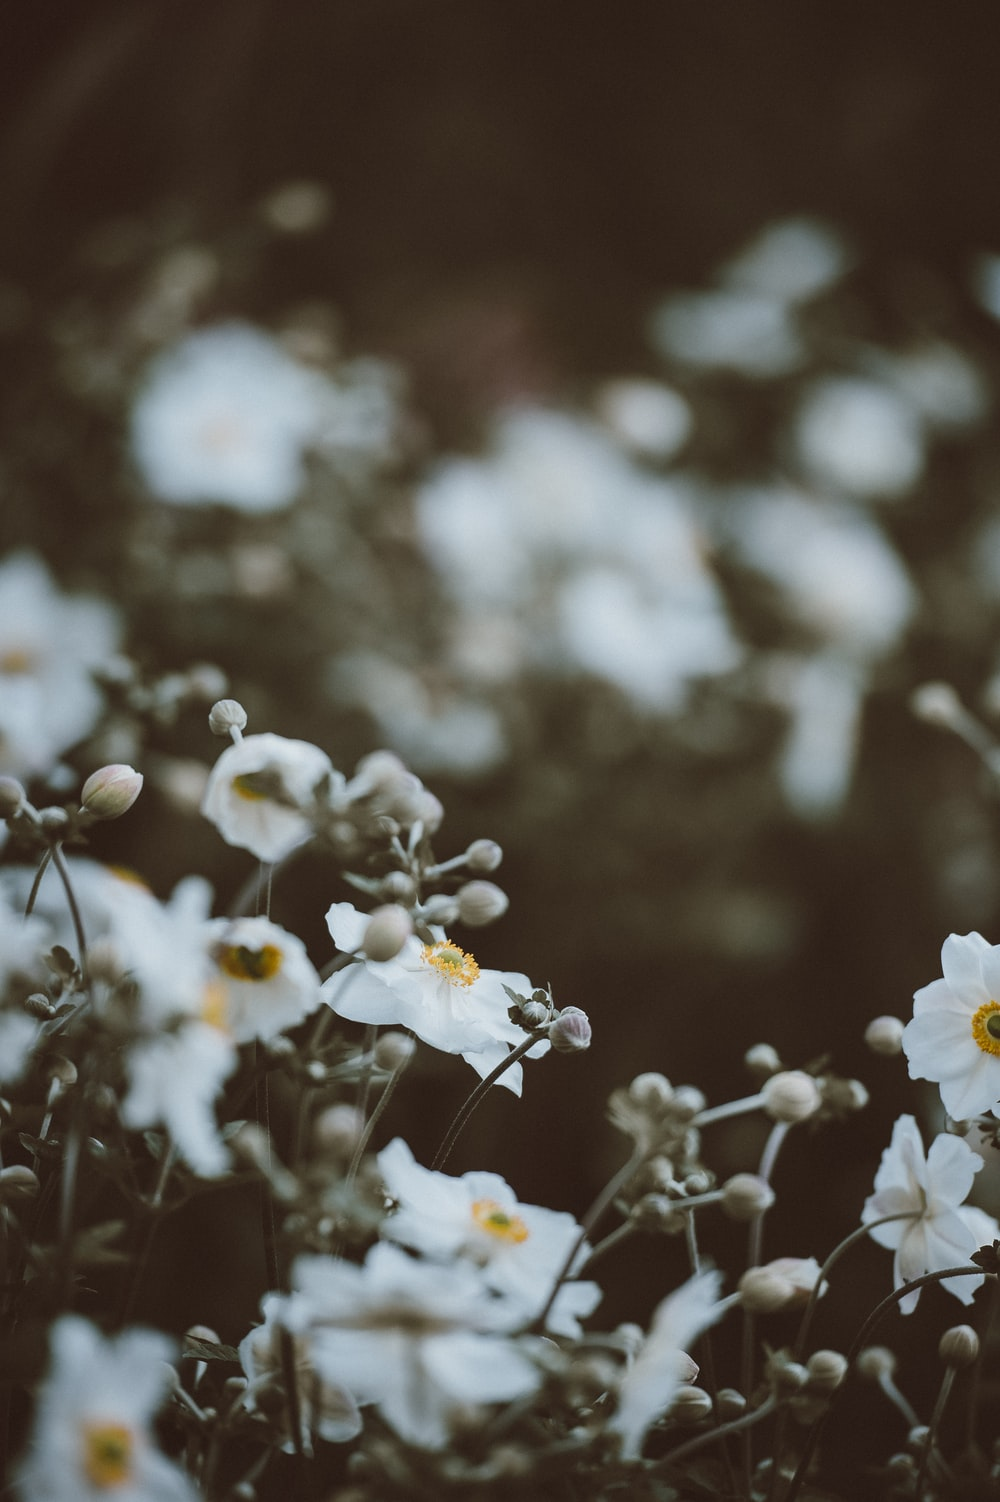 selective focus photography of white-and-yellow petaled flowers